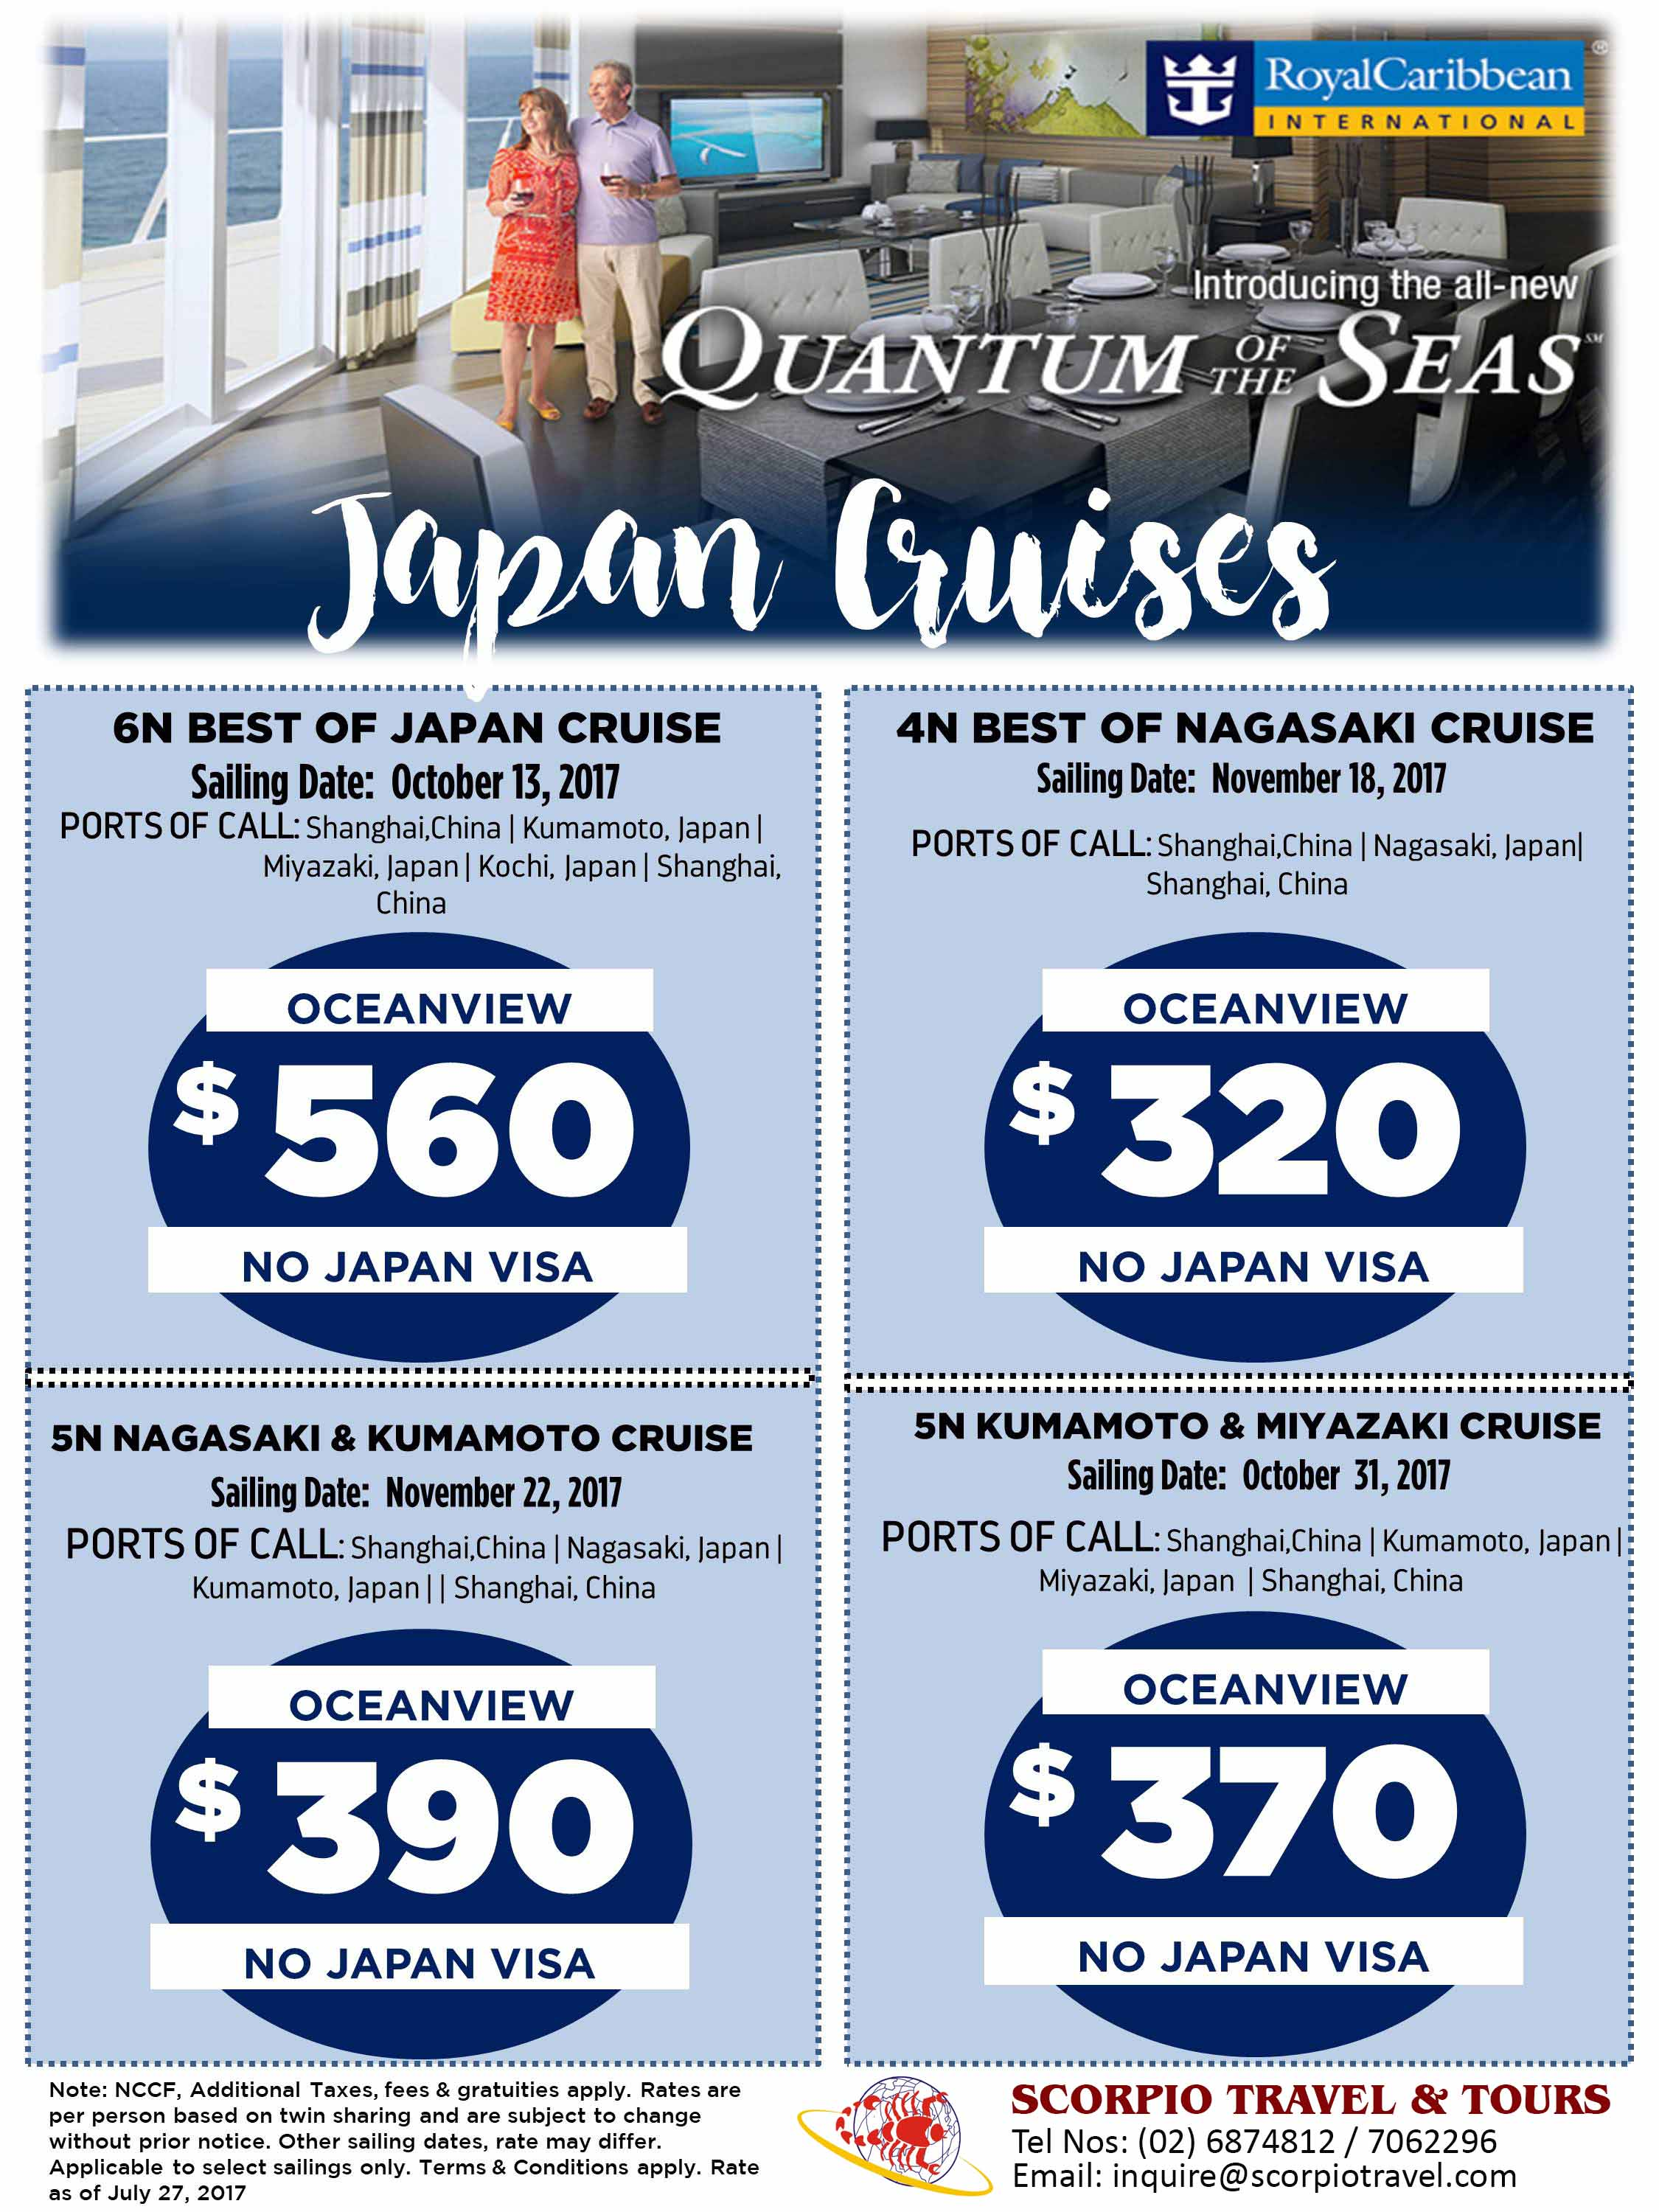 Royal Caribbean Japan Cruise